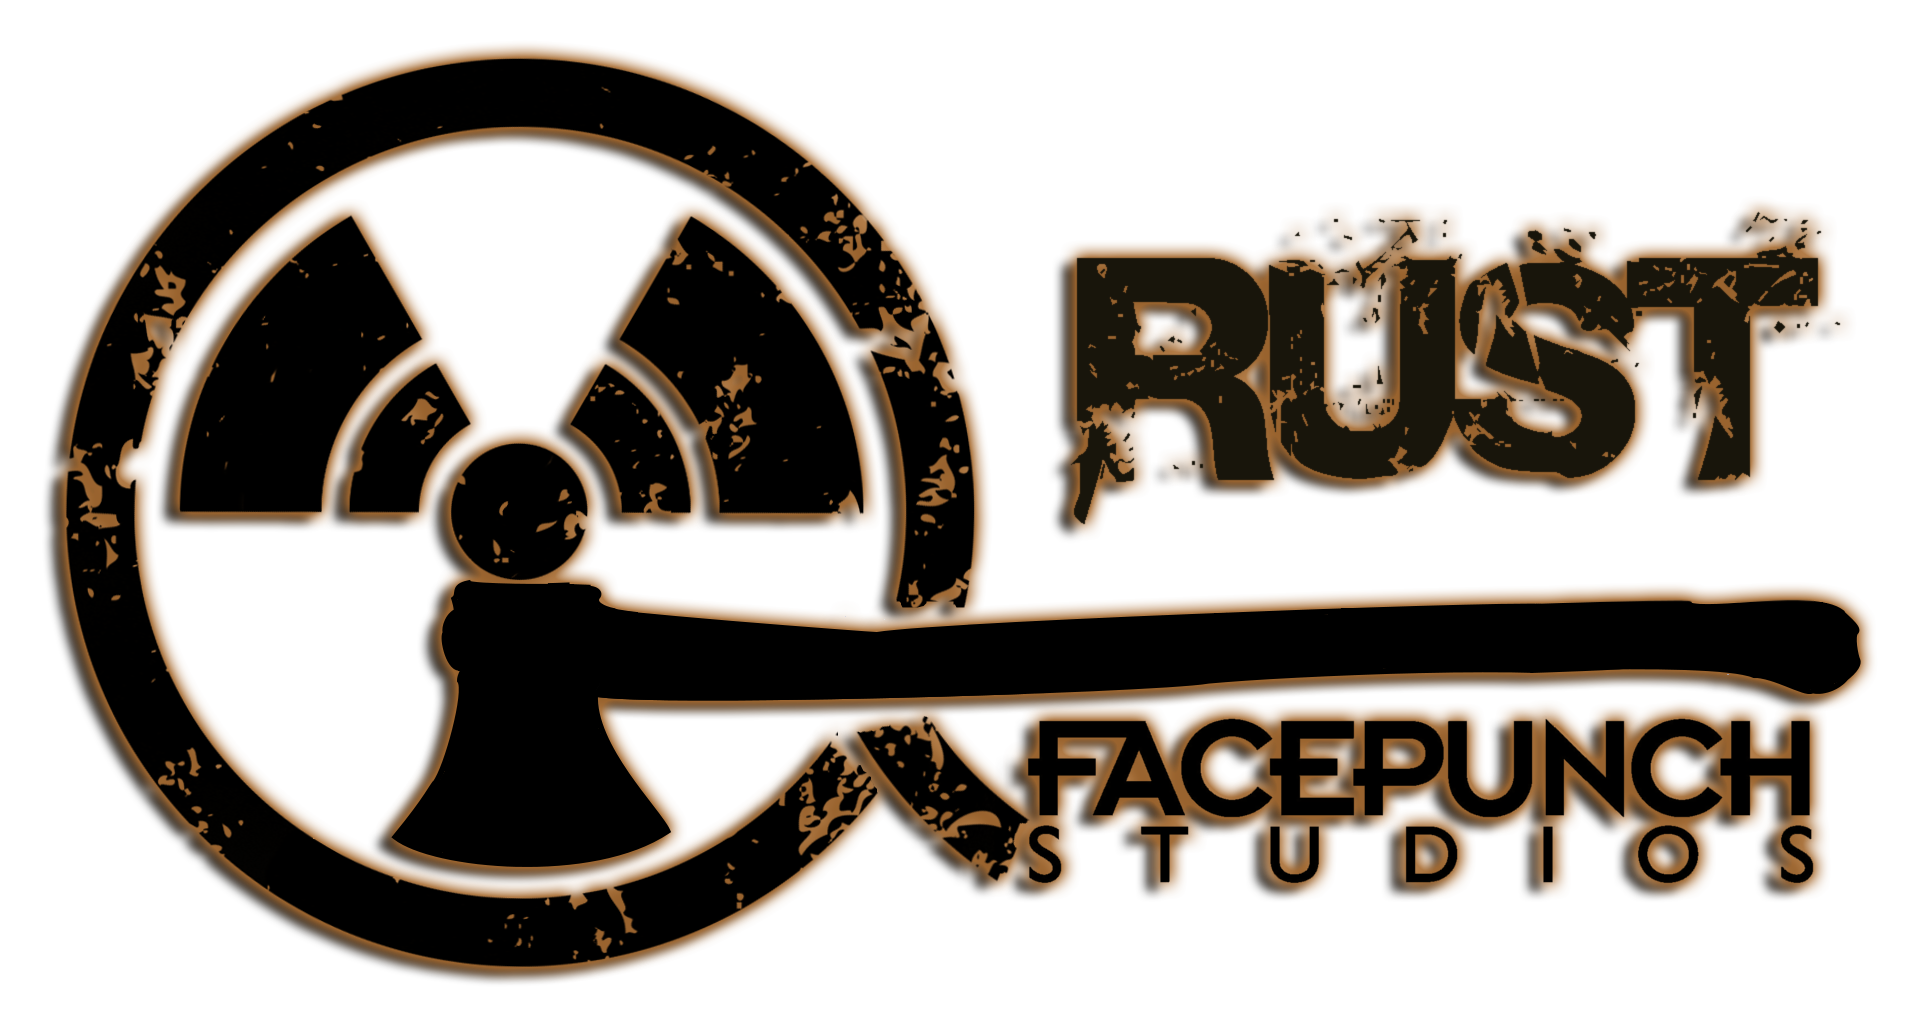 http://images.wikia.com/play-rust/images/d/d0/Rust-Logo.png